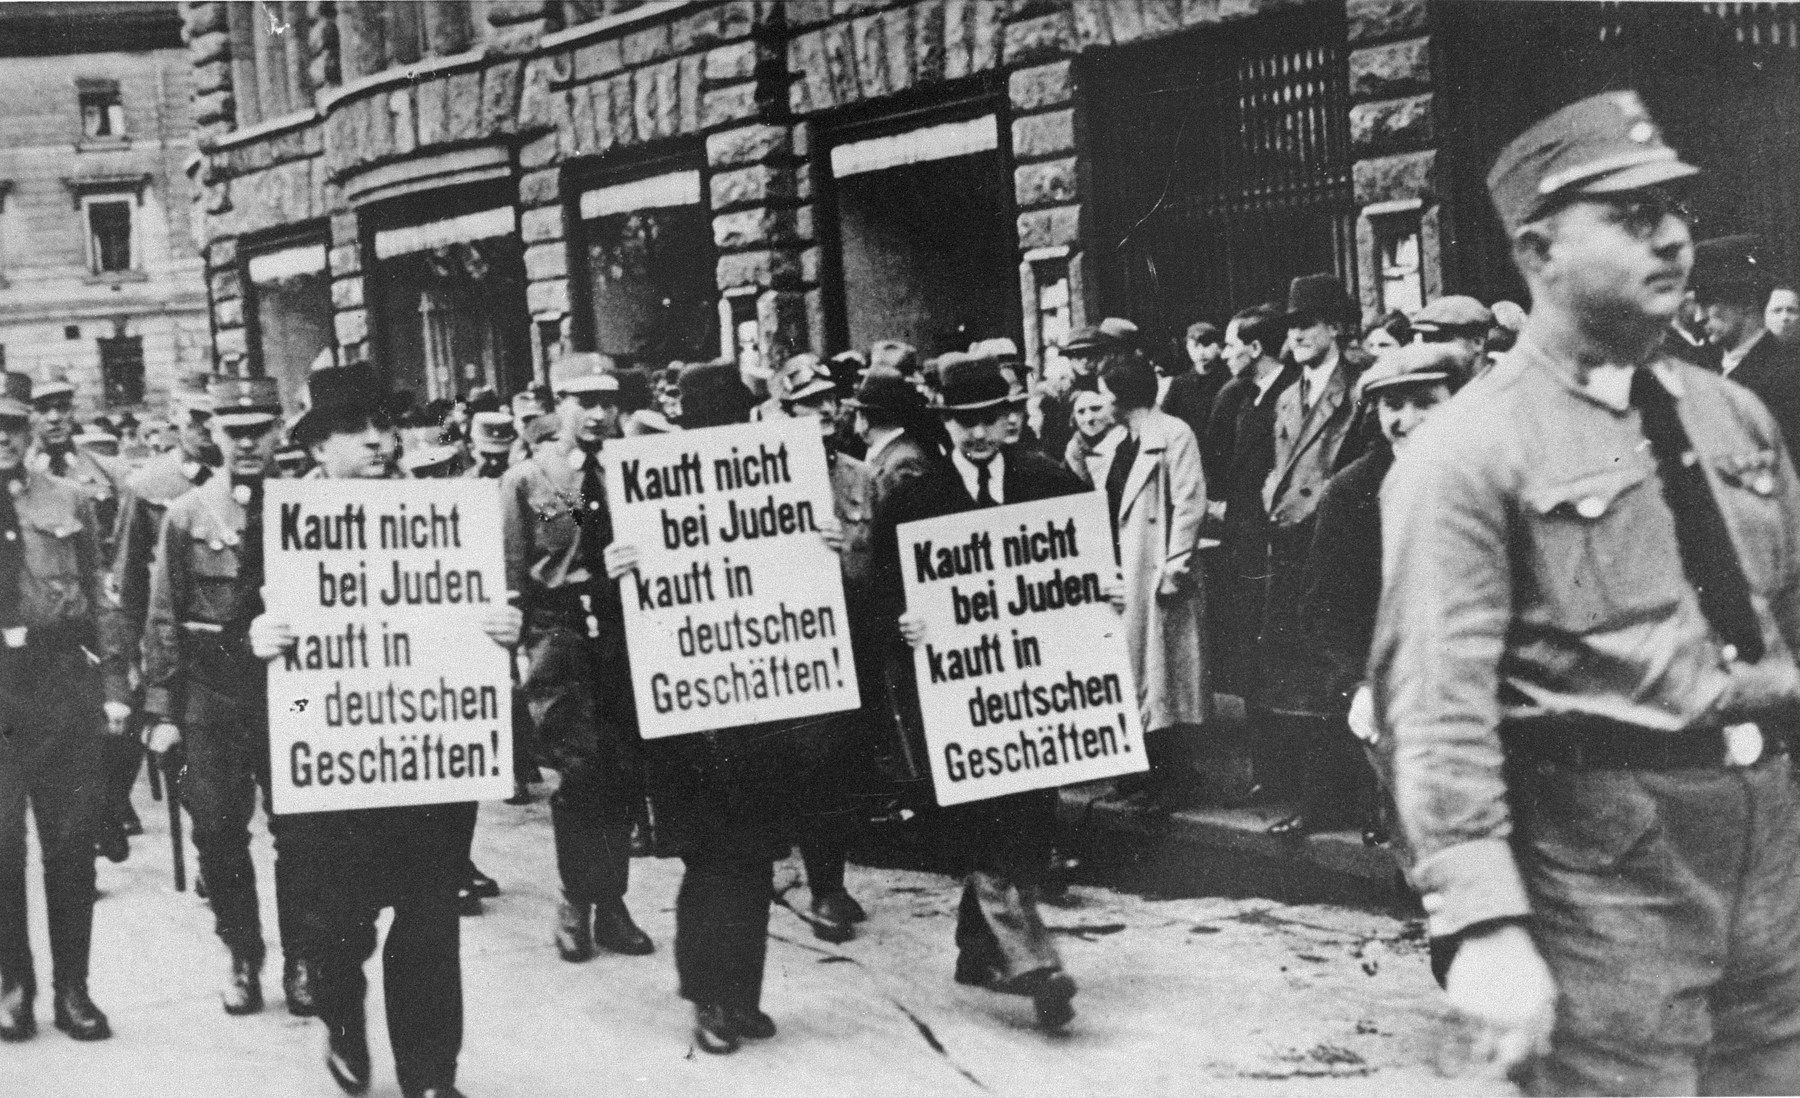 "Three Jewish businessmen are paraded down Bruehl Strasse in central Leipzig, carrying signs that read:  ""Don't buy from Jews;  Shop at German stores!""   The third marcher from the left is Chaim Bleiweiss, the donor's father.  Bleiweiss owned a fur store located at Bruehl Strasse 68.  The photo was produced as a postcard and sold at kiosks in Leipzig, where Chaim Bleiweiss purchased it."